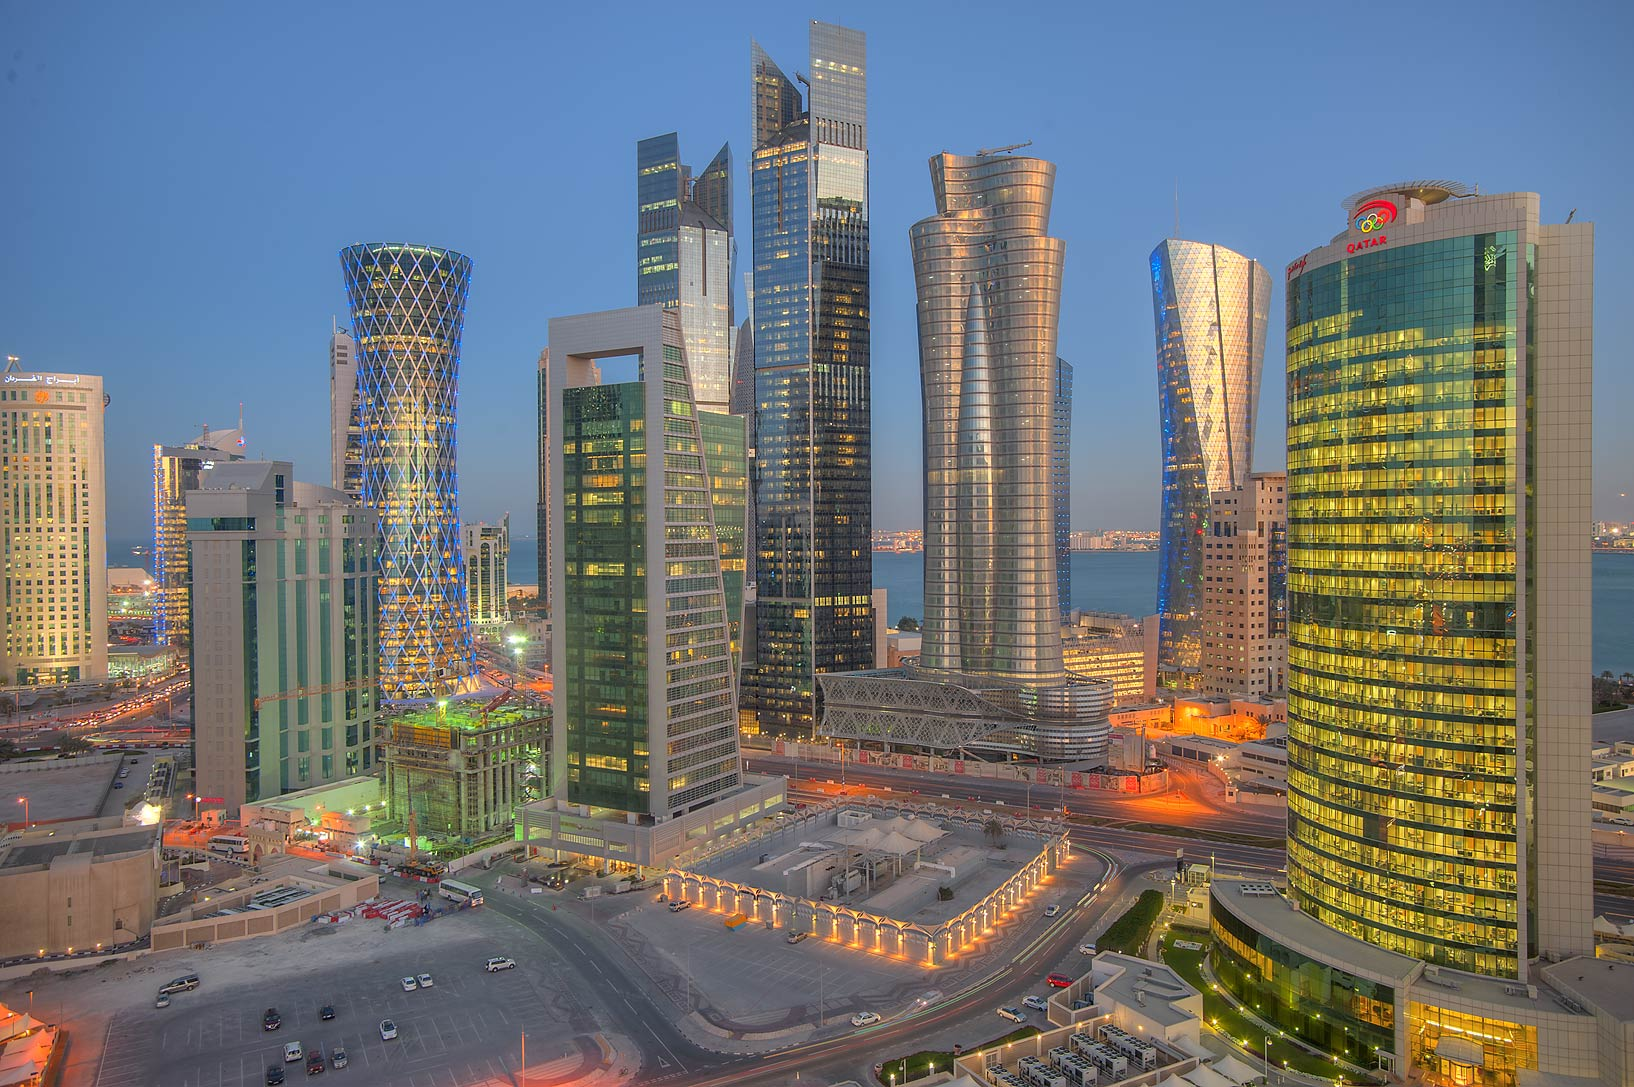 View of West Bay at evening from Room 1703 of Dareen Tower. Doha, Qatar